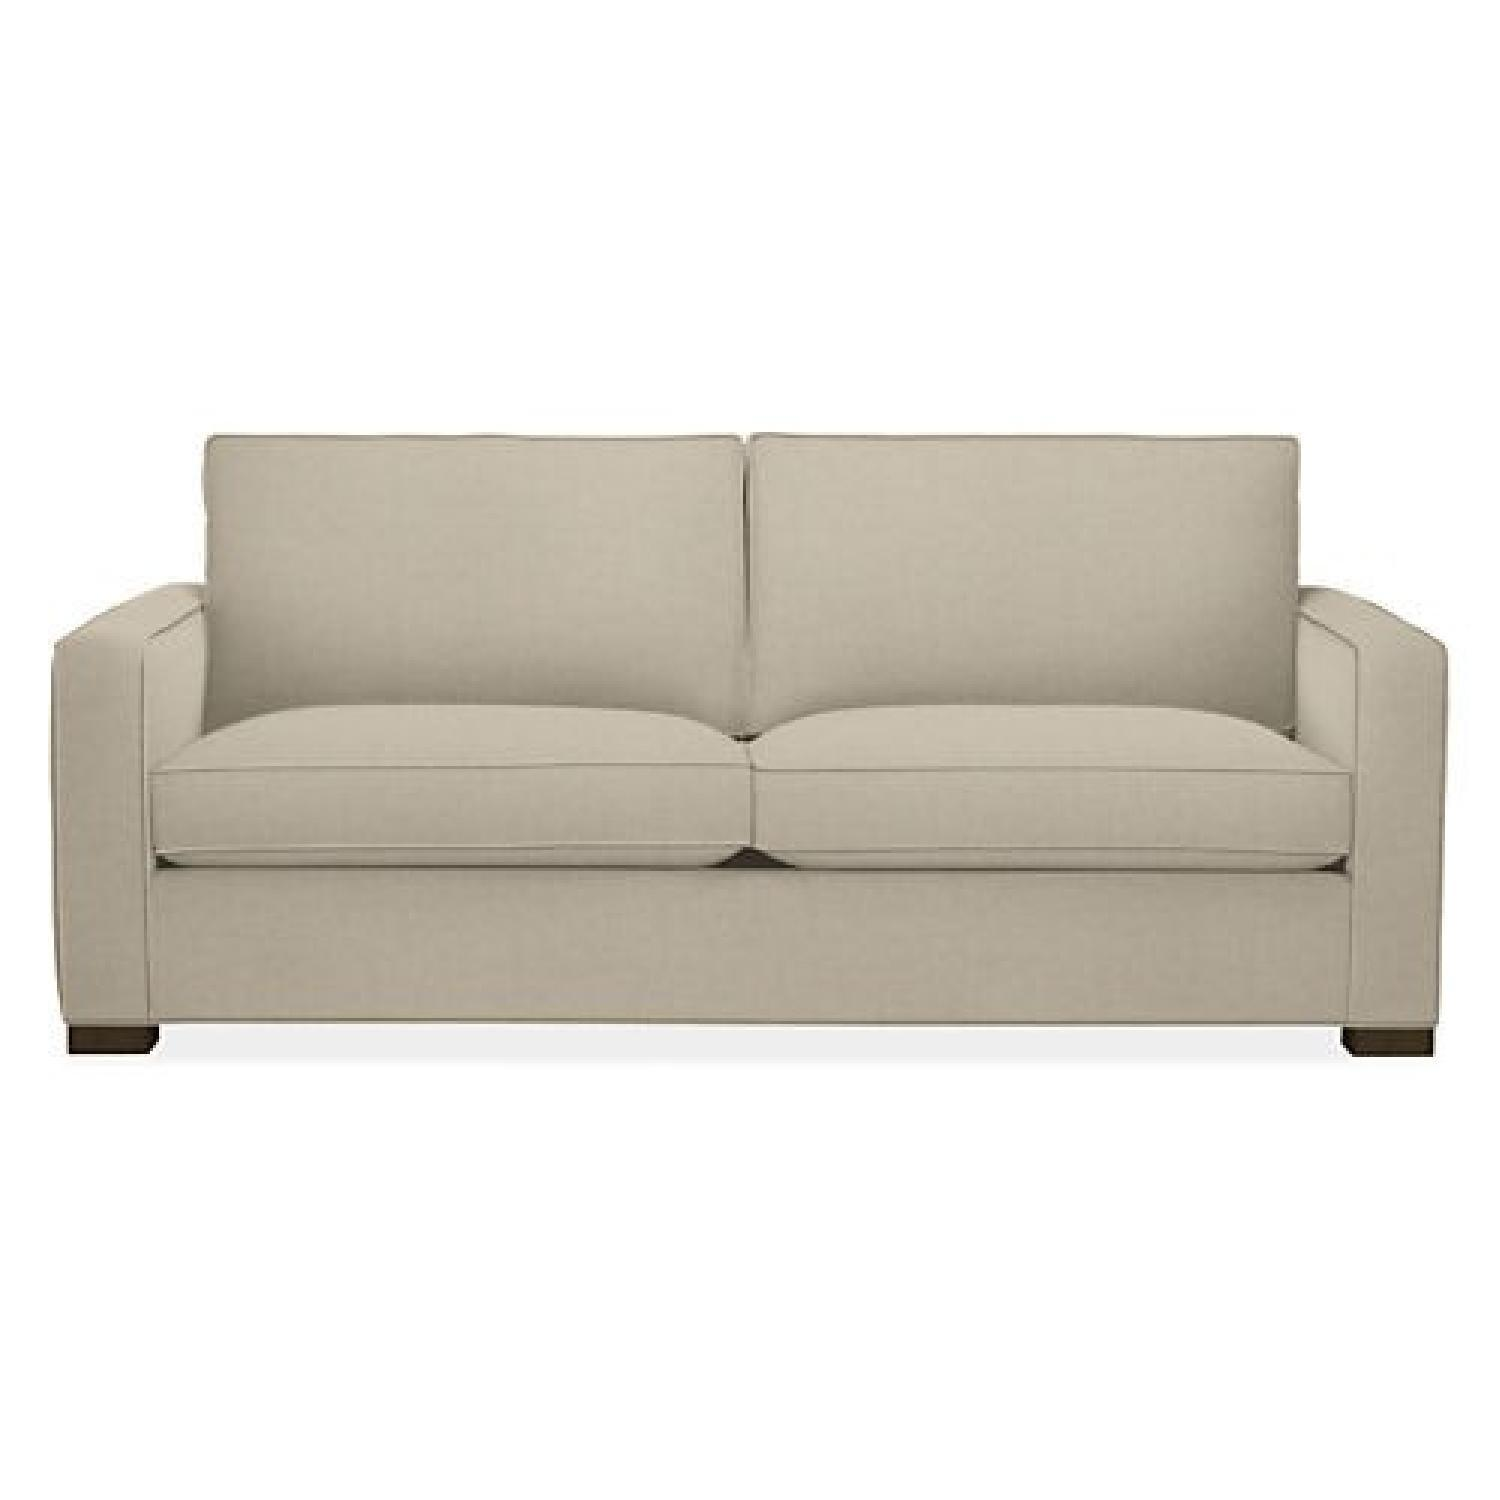 Room & Board Morrison Custom Sofa - image-0